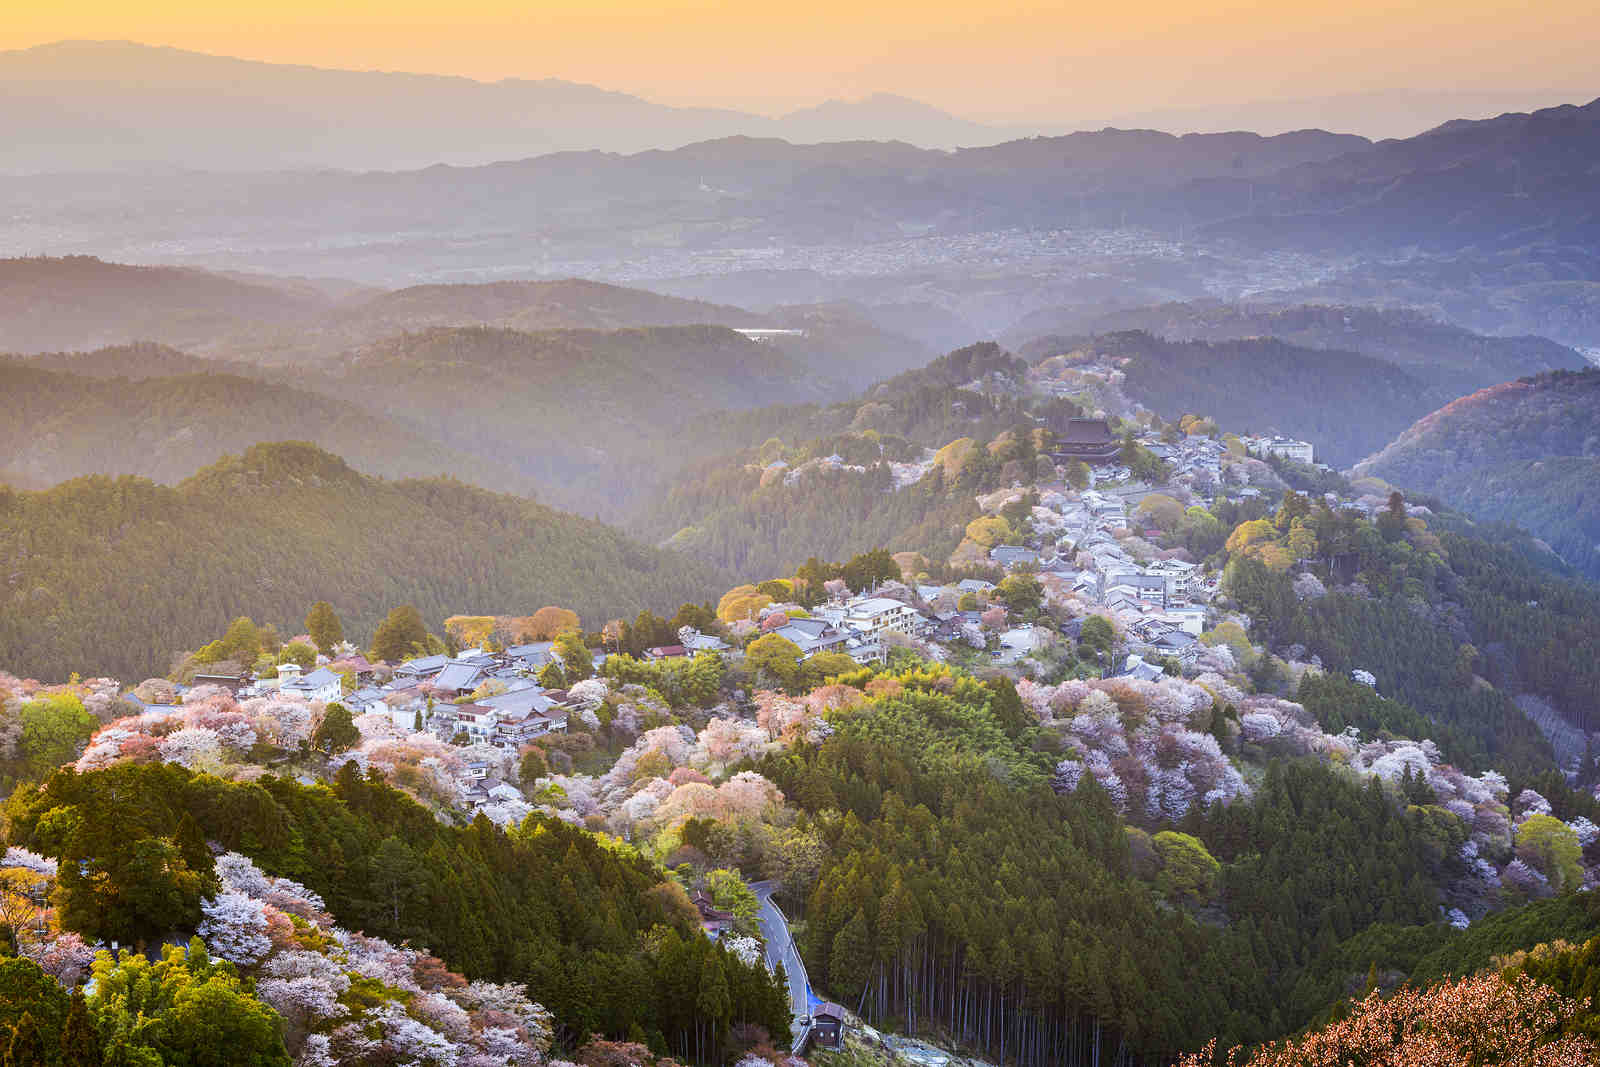 View of Town and Cherry Trees in Spring, Yoshinoyama, Nara, Japan